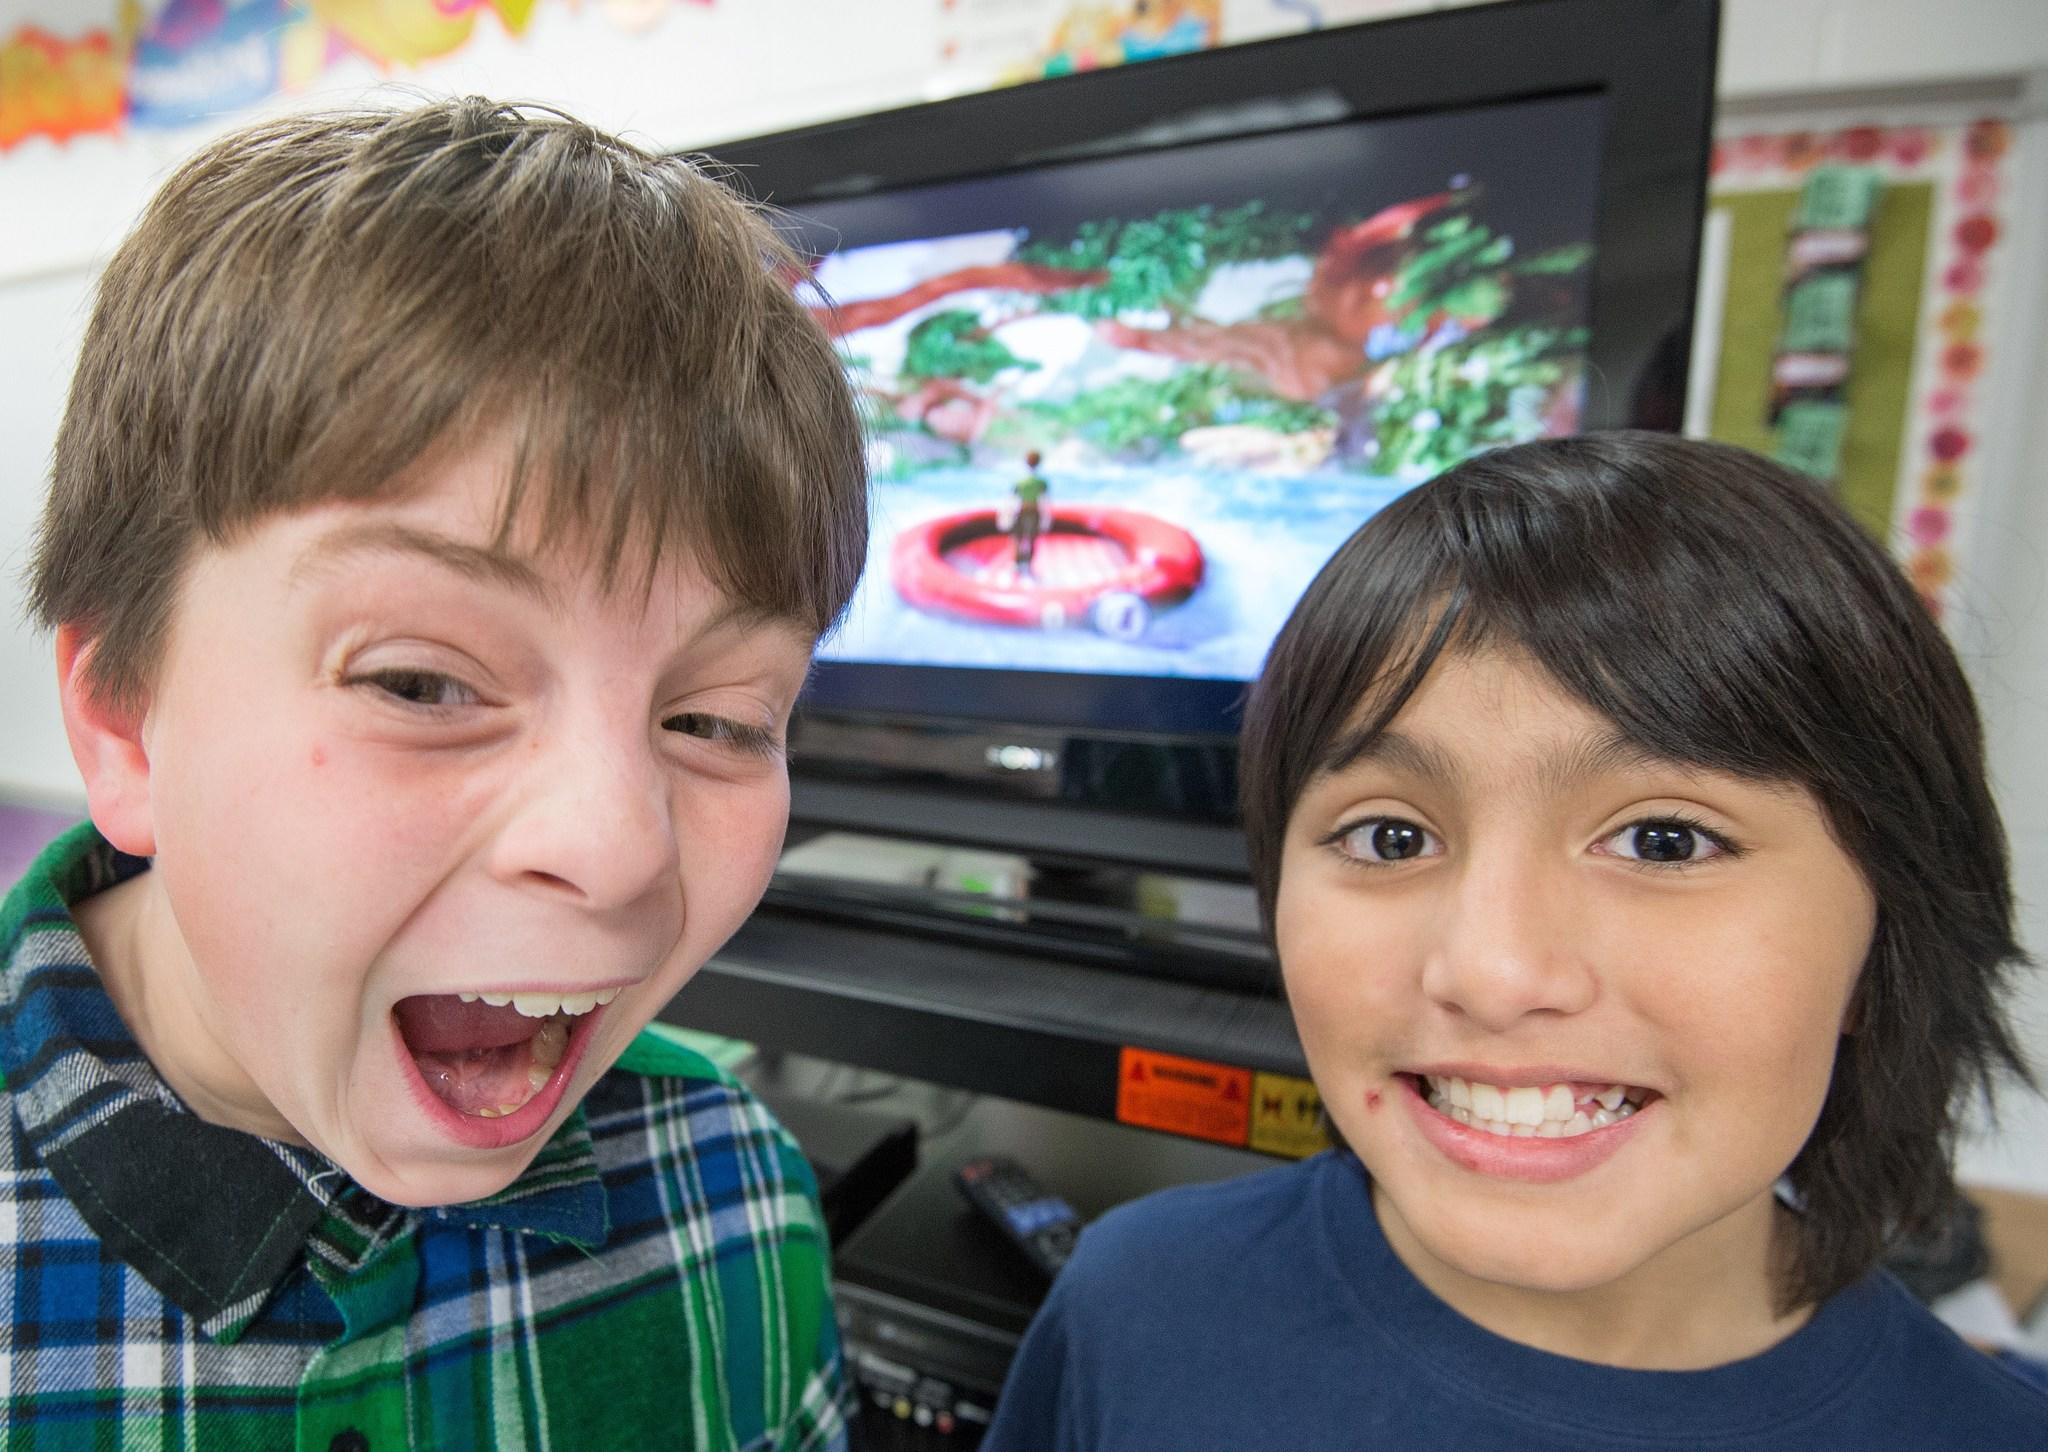 Sawyer Whitely(L) and Michael Mendoza, who are autistic, pose for a photo while playing selected games on a Microsoft X-box Kinect on February 21, at Steuart W. Weller Elementary School in Ashburn, Virginia. Experts children with autism can benefit from playing some computer games such as Kinect, that help with coordination, body awareness and cooperation, all challenges for kids on the autism spectrum.